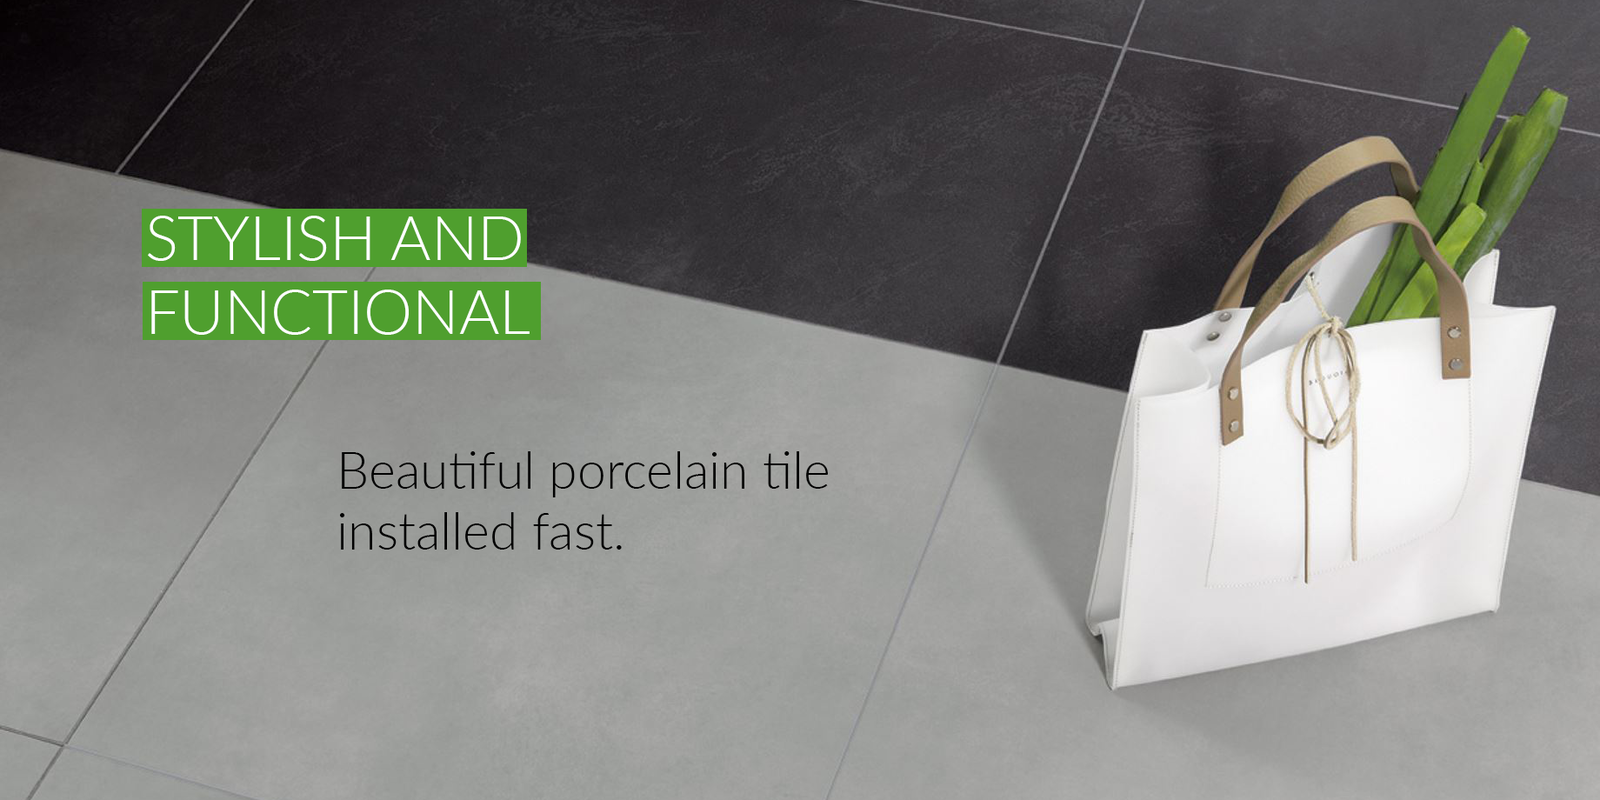 Stylish and functional. DryTile is the same porcelain tile you love, installed faster.